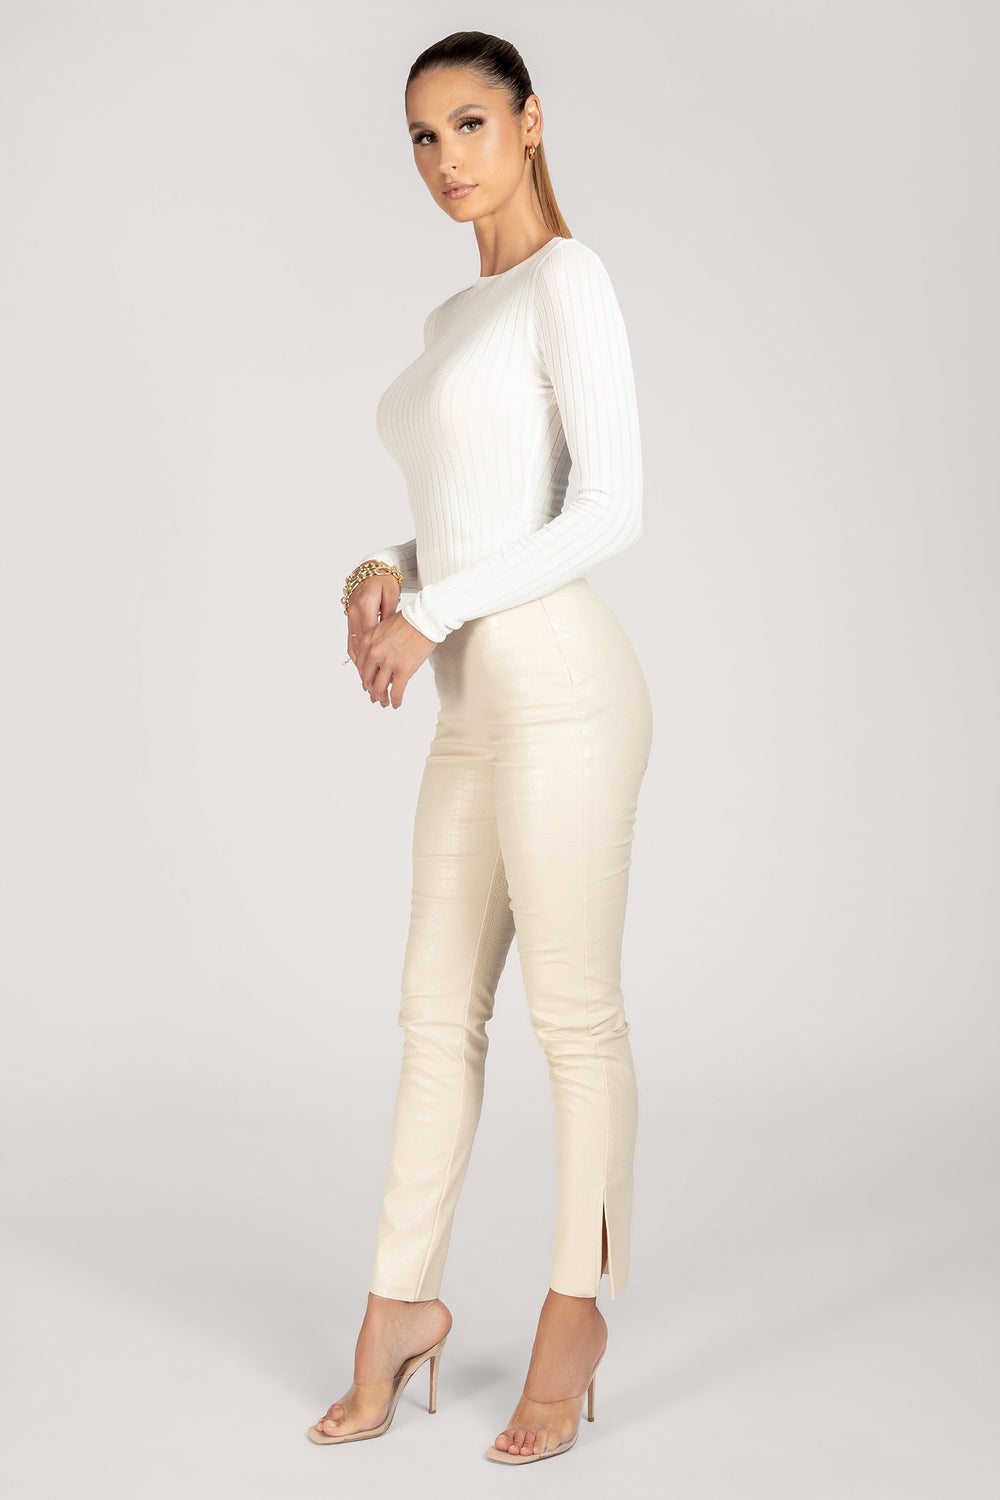 Tia Ribbed Sheer Knit Crew Neck Top - White